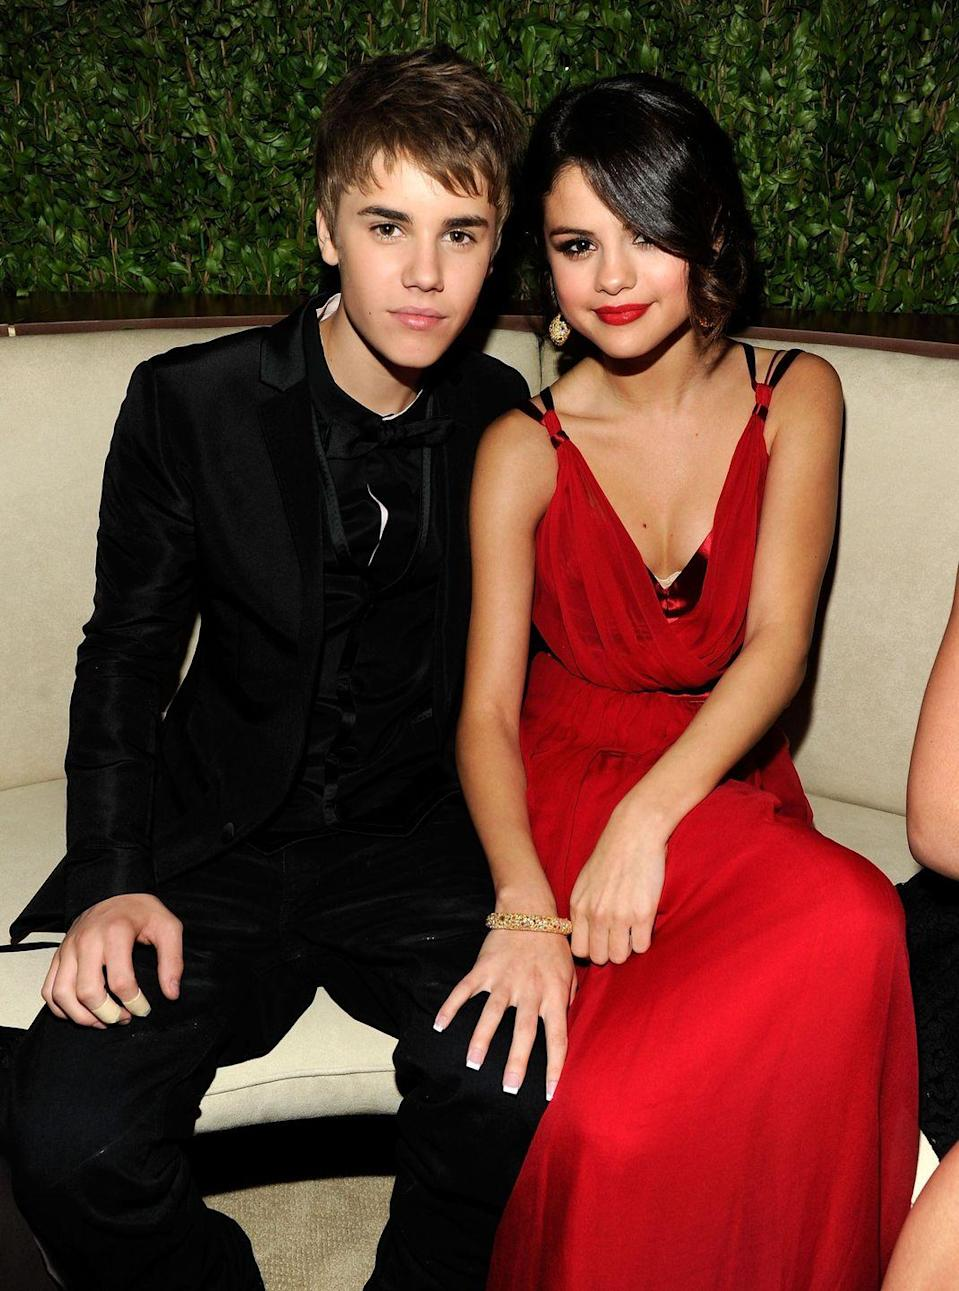 "<p><a href=""https://www.cosmopolitan.com/entertainment/celebs/a62812/justin-bieber-selena-gomez-timeline-breakup/"" rel=""nofollow noopener"" target=""_blank"" data-ylk=""slk:Over the years"" class=""link rapid-noclick-resp"">Over the years</a>, Selena and Justin have thrown shade at each other more times than they've been apart and back together again. <a href=""https://www.cosmopolitan.com/entertainment/news/a62785/justin-bieber-selena-gomez-instagram-shade/"" rel=""nofollow noopener"" target=""_blank"" data-ylk=""slk:Things reached a peak in 2016"" class=""link rapid-noclick-resp"">Things reached a peak in 2016</a> when Justin threatened to shut down his social media after fans lashed out at him over a photo of Sofia Richie. Then Selena got in there, commenting, ""If you can't handle the hate then stop posting pictures of your girlfriend lol,"" before posting photos of herself with fans on Instagram. In response, Justin wrote, ""It's funny to see people that used me for attention and still try to point the finger this way. Sad. All love."" The episode ended with Selena apologizing on Snapchat (""What I said was selfish and pointless"") and Justin deleting his Instagram entirely. (Don't worry, it returned a few months later.) </p>"